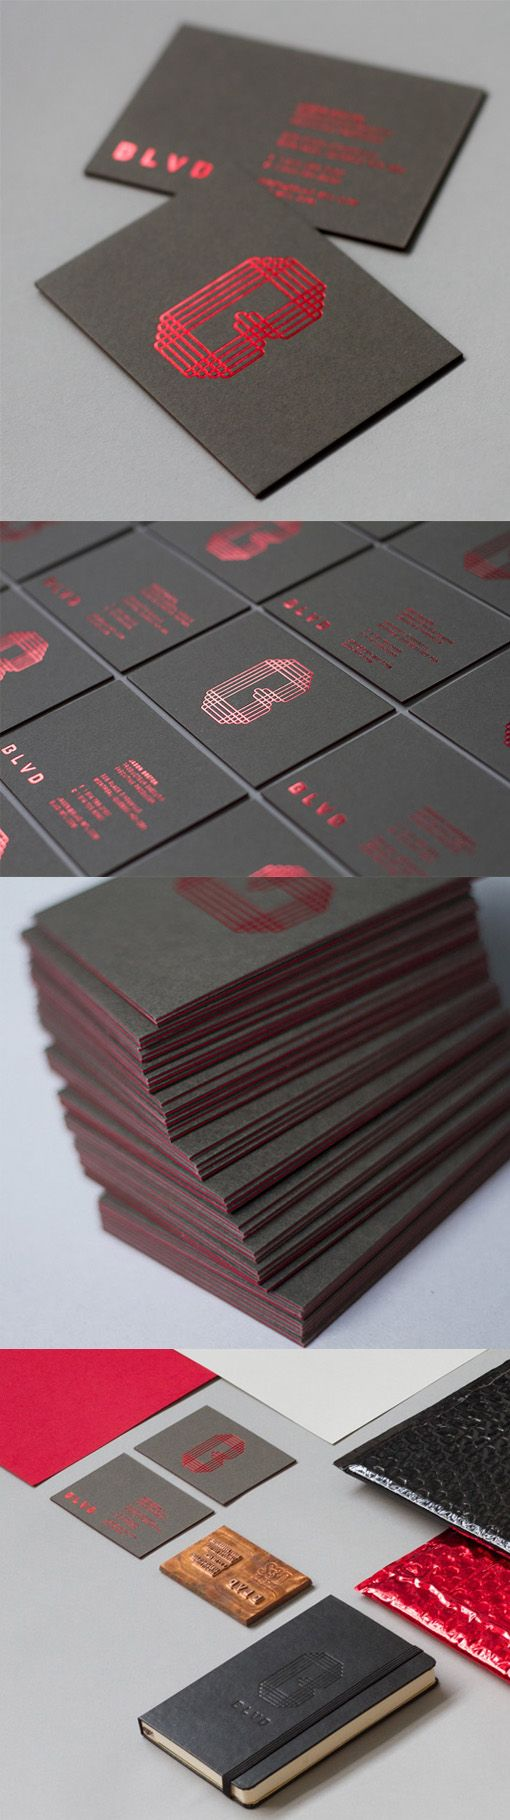 Black And Red Foil Embossed Minimalist Business Card For A Film Production Studio